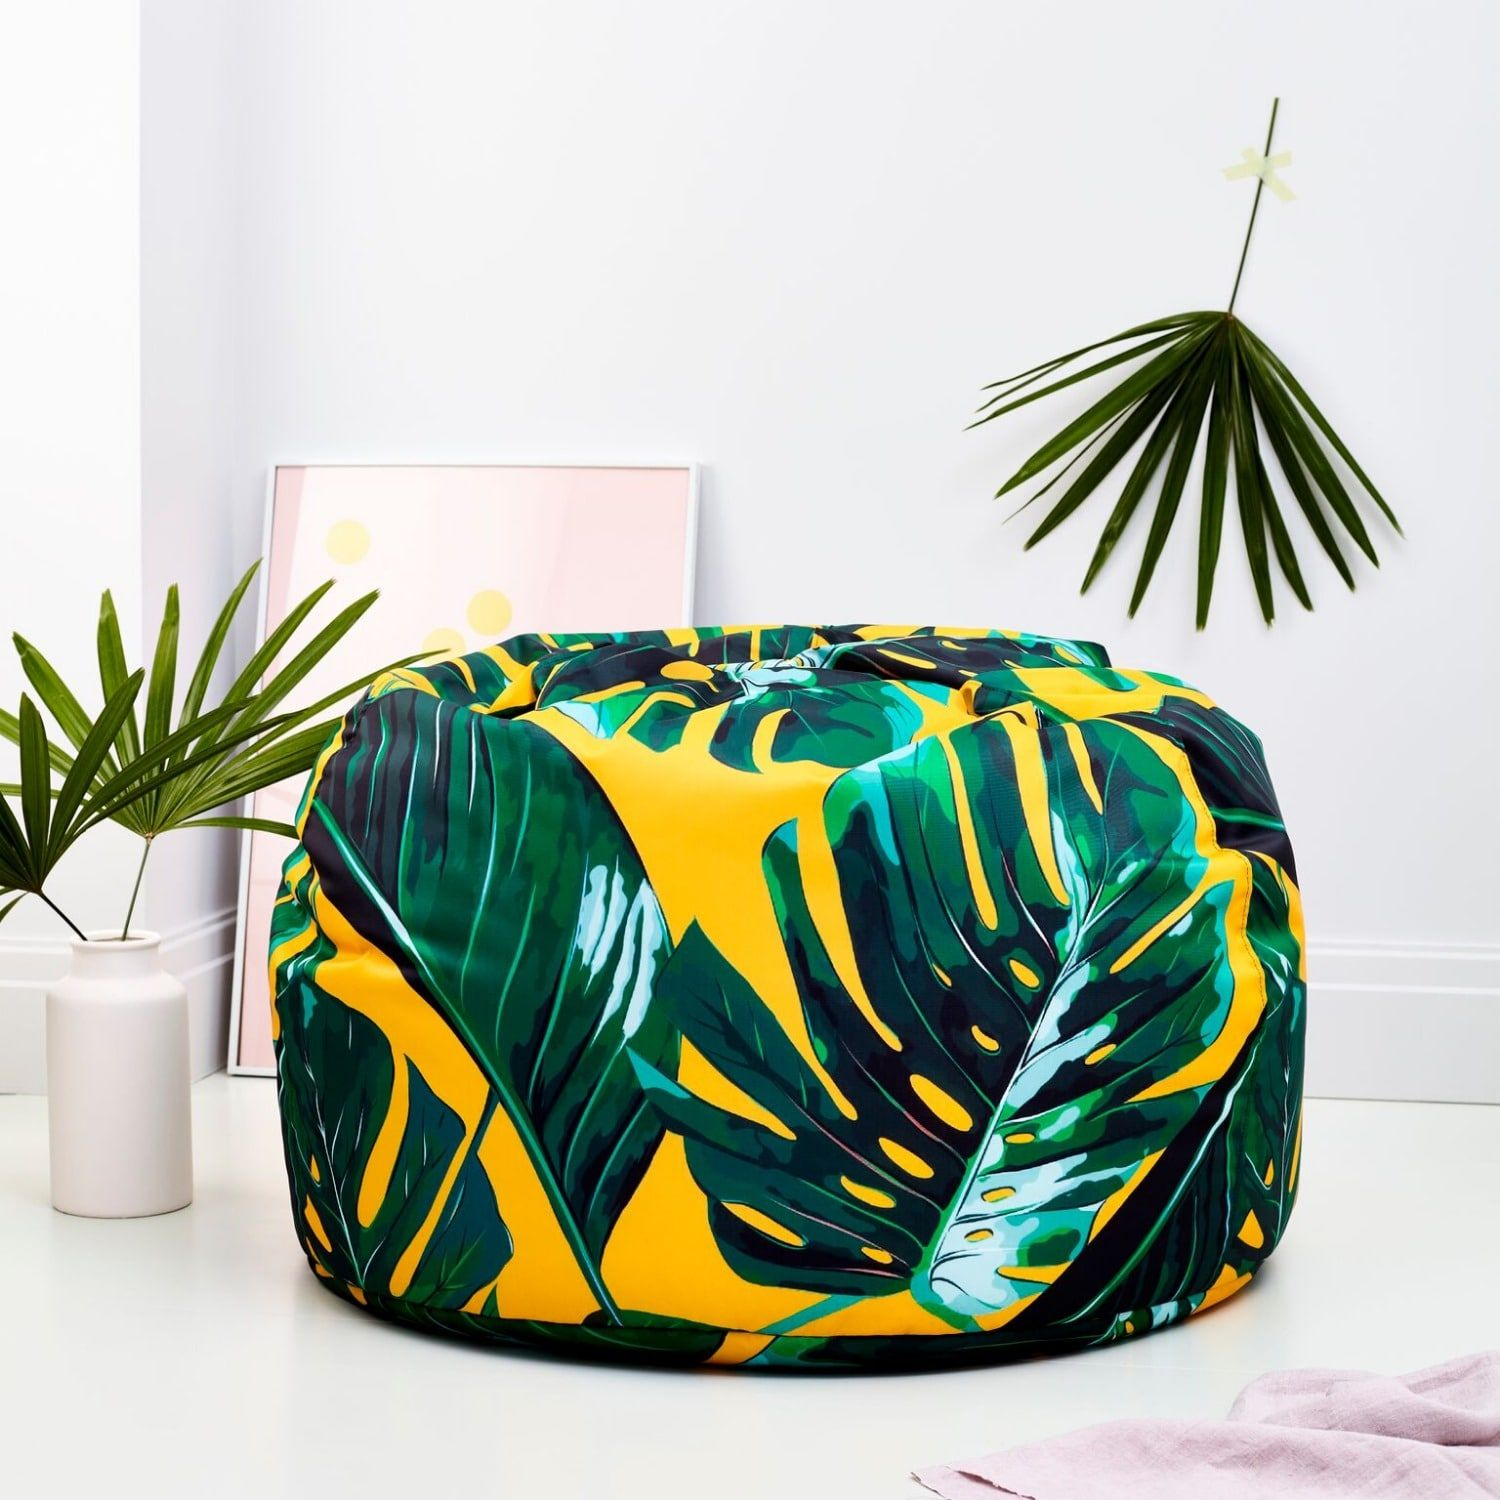 Fantastic Tillyanna Bright Palm Leaves Adult Bean Bag In 2019 Caraccident5 Cool Chair Designs And Ideas Caraccident5Info